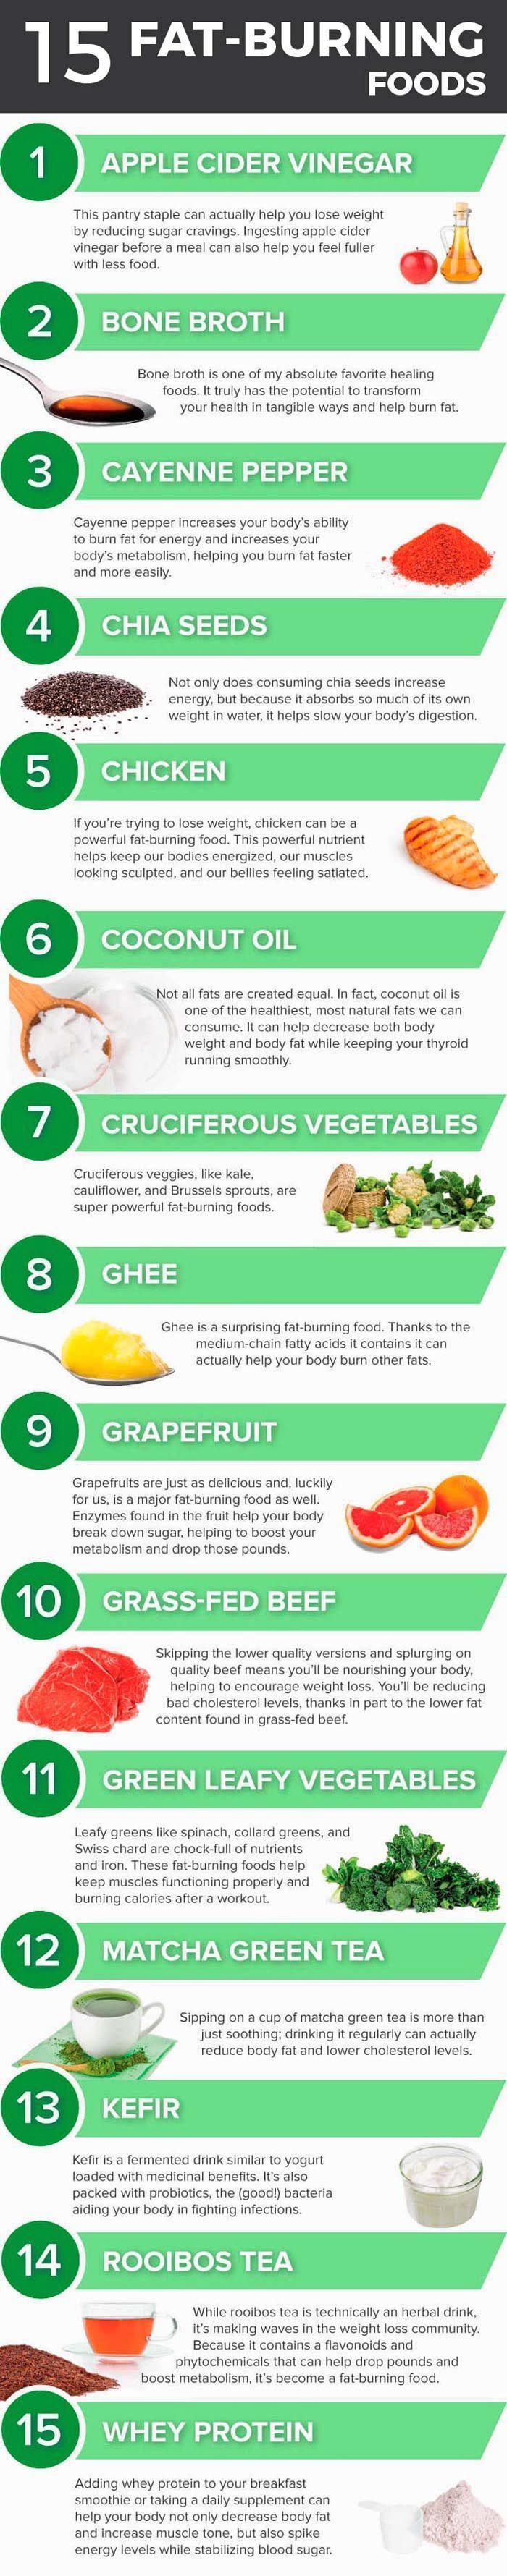 Best foods to help you burn fat.15 fat burning foods